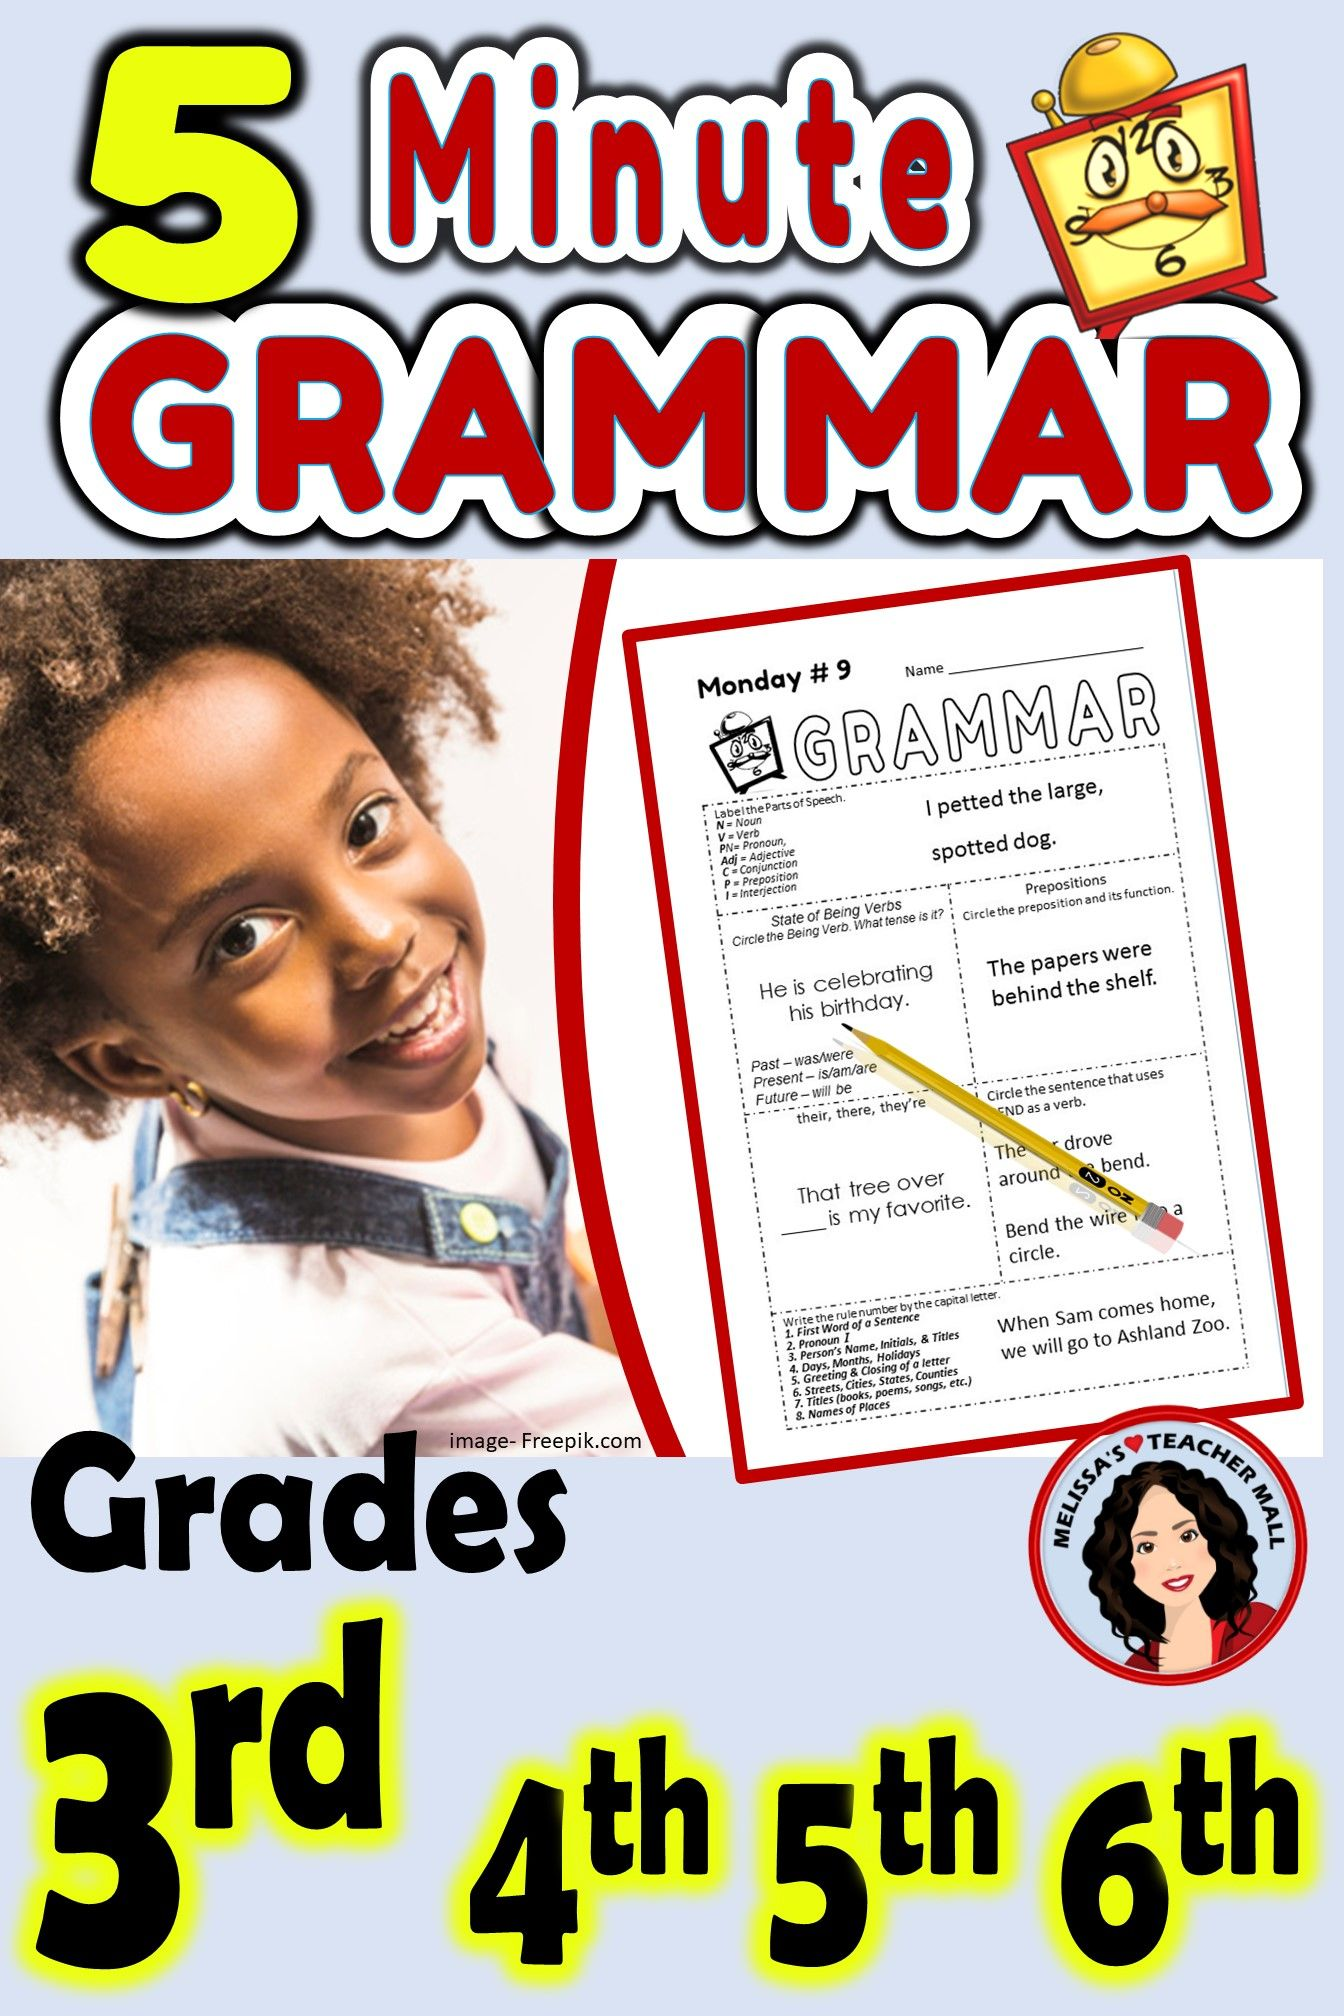 hight resolution of 5 Minute Grammar Daily Grammar Worksheets 3rd GRADE Practice and Assessment    Grammar worksheets